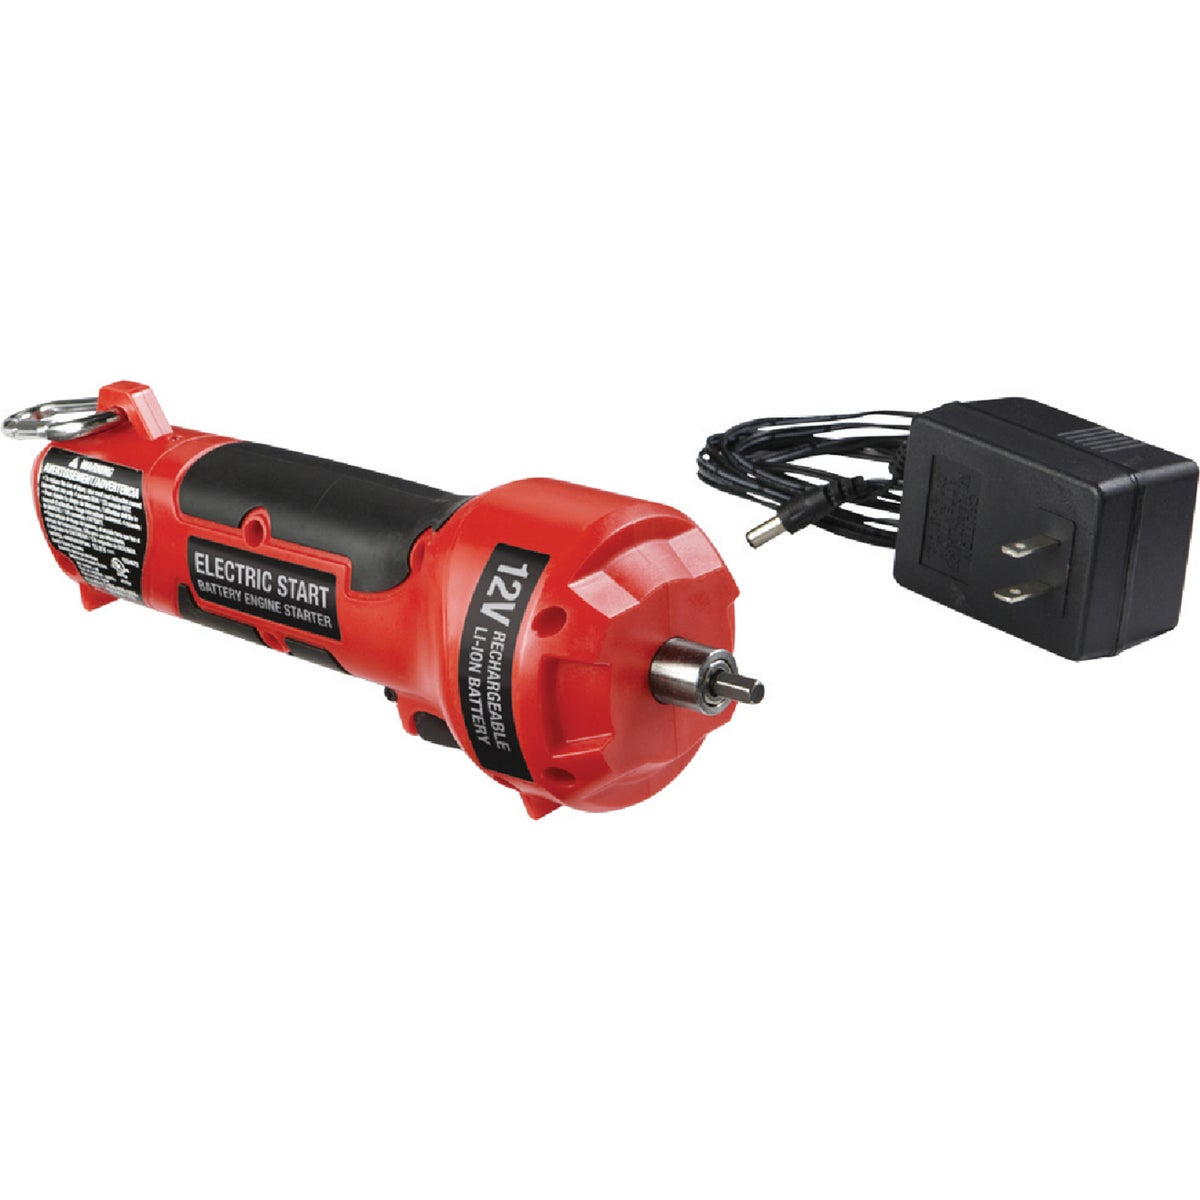 CORDLESS STARTER MOTOR - 49MRBESY966 by M T D Southwest Inc